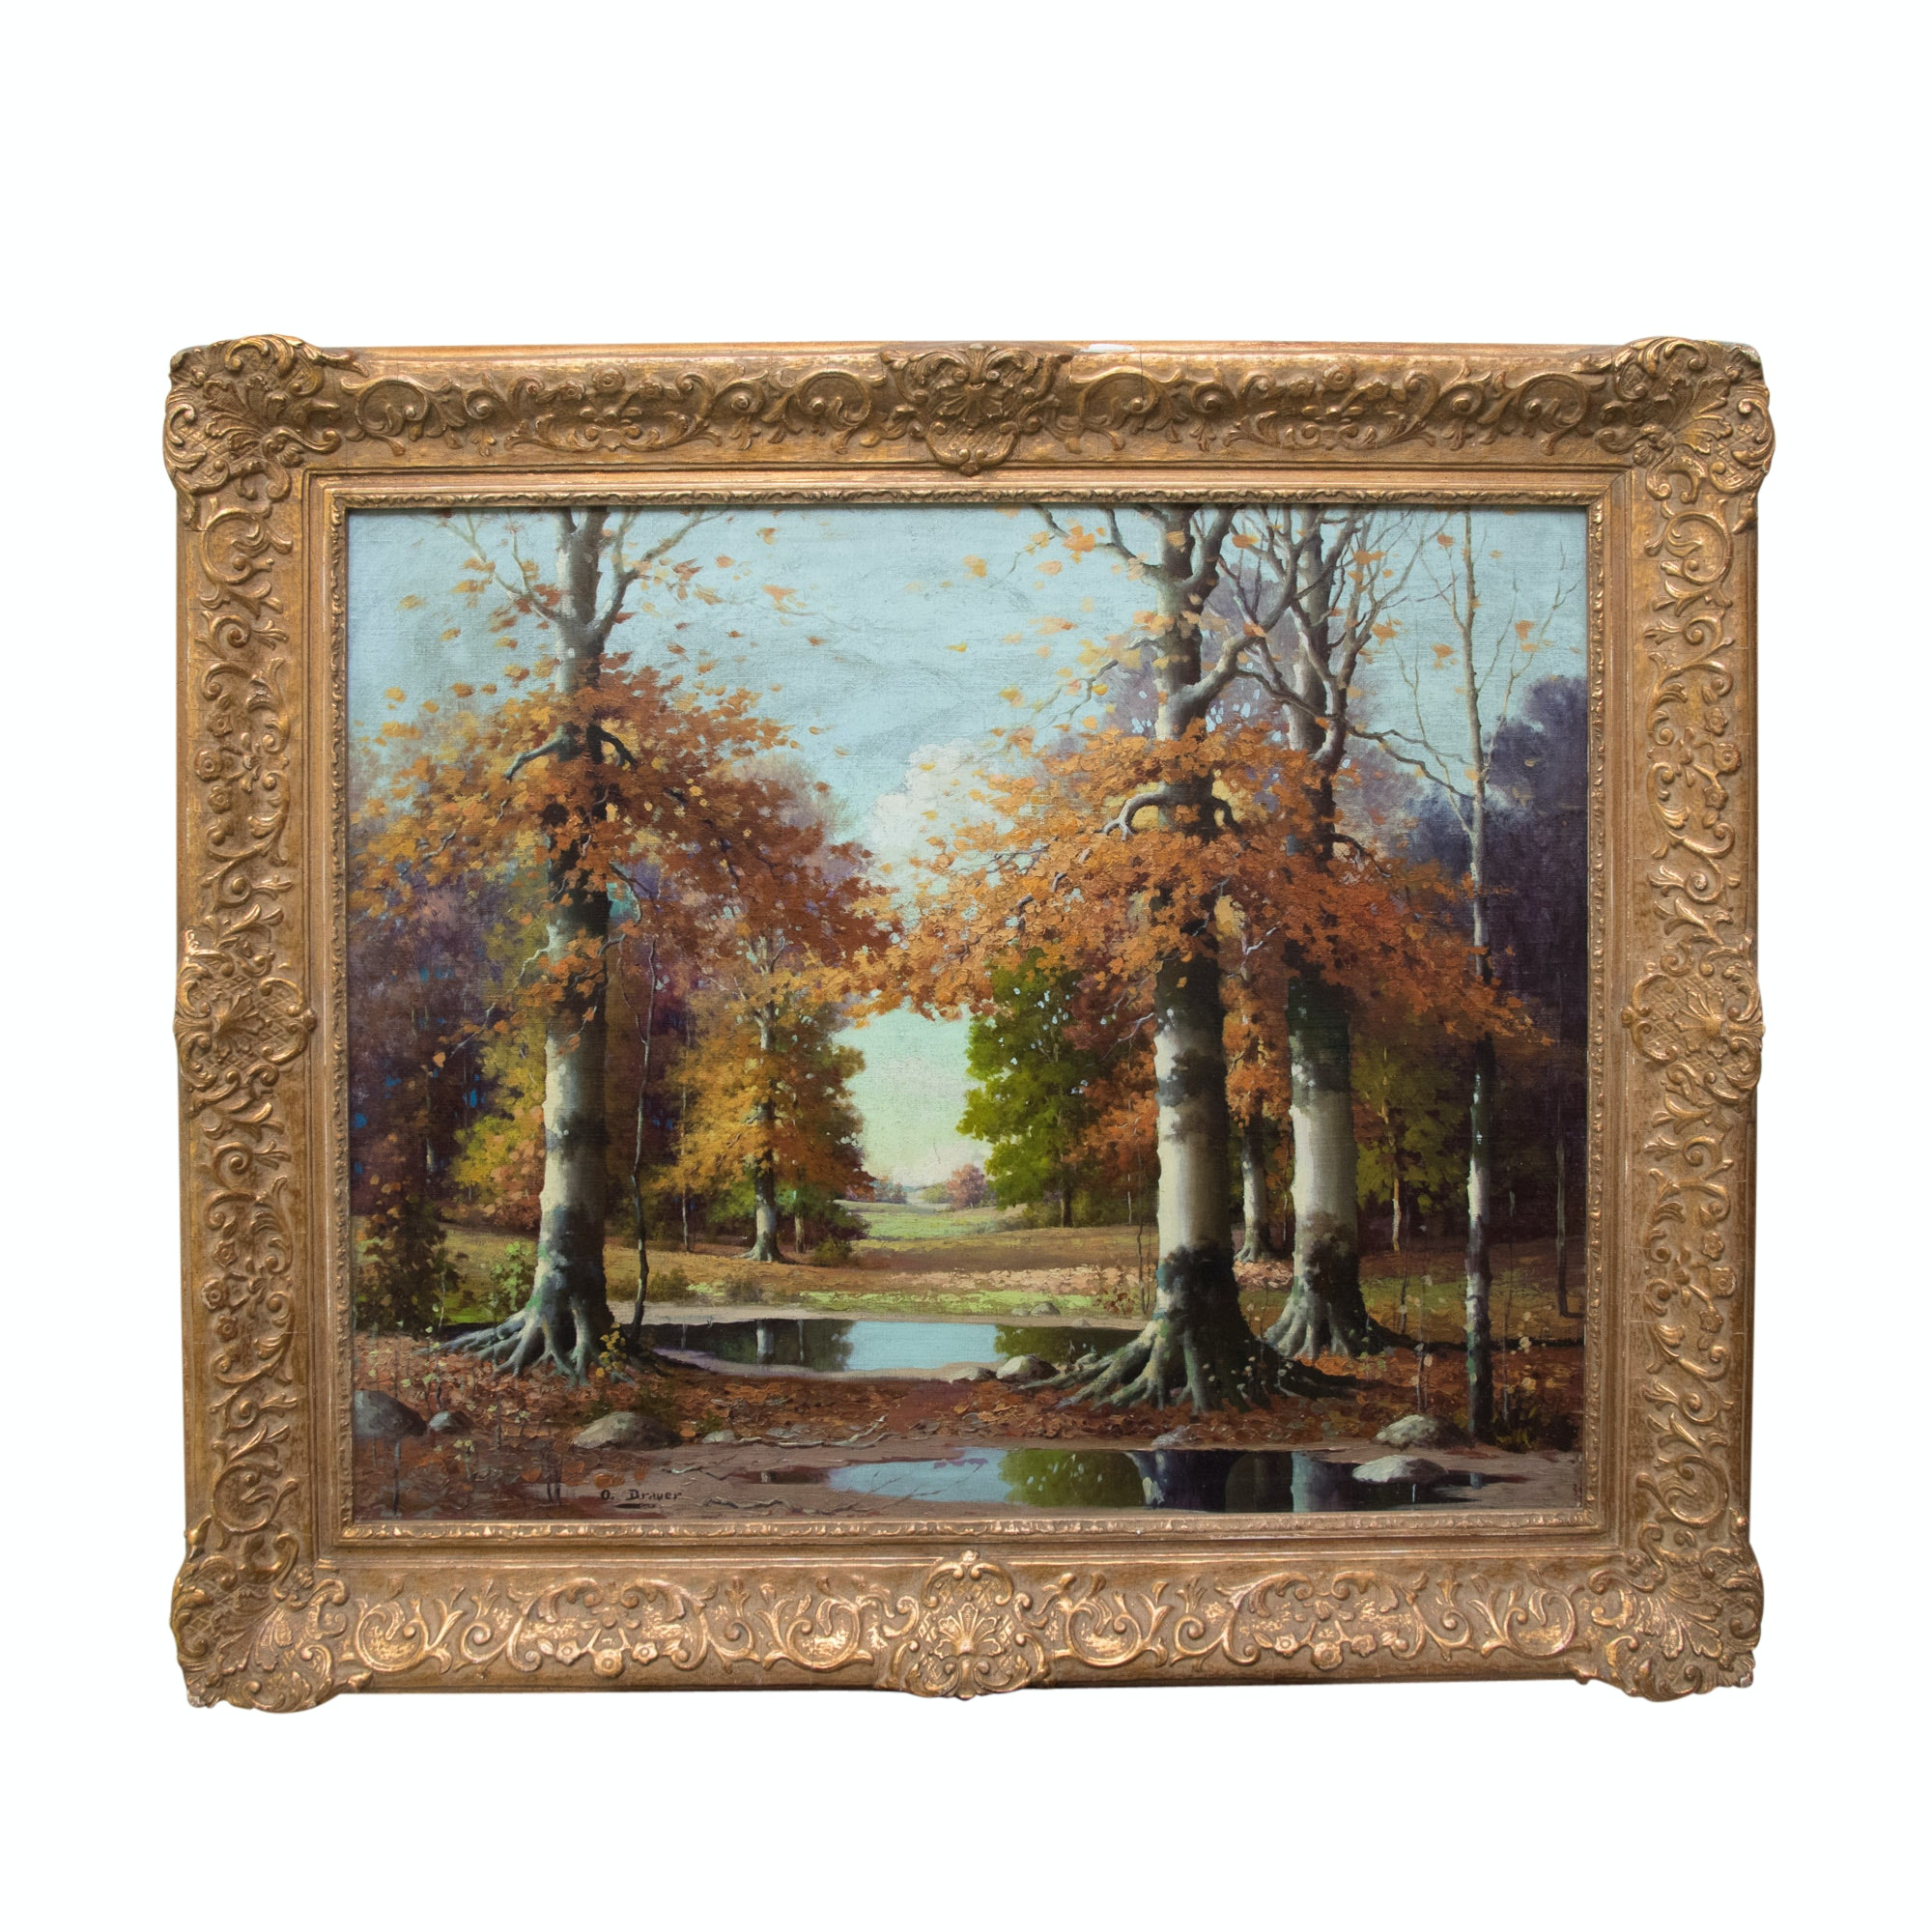 Art, Home Furnishings, Décor & More